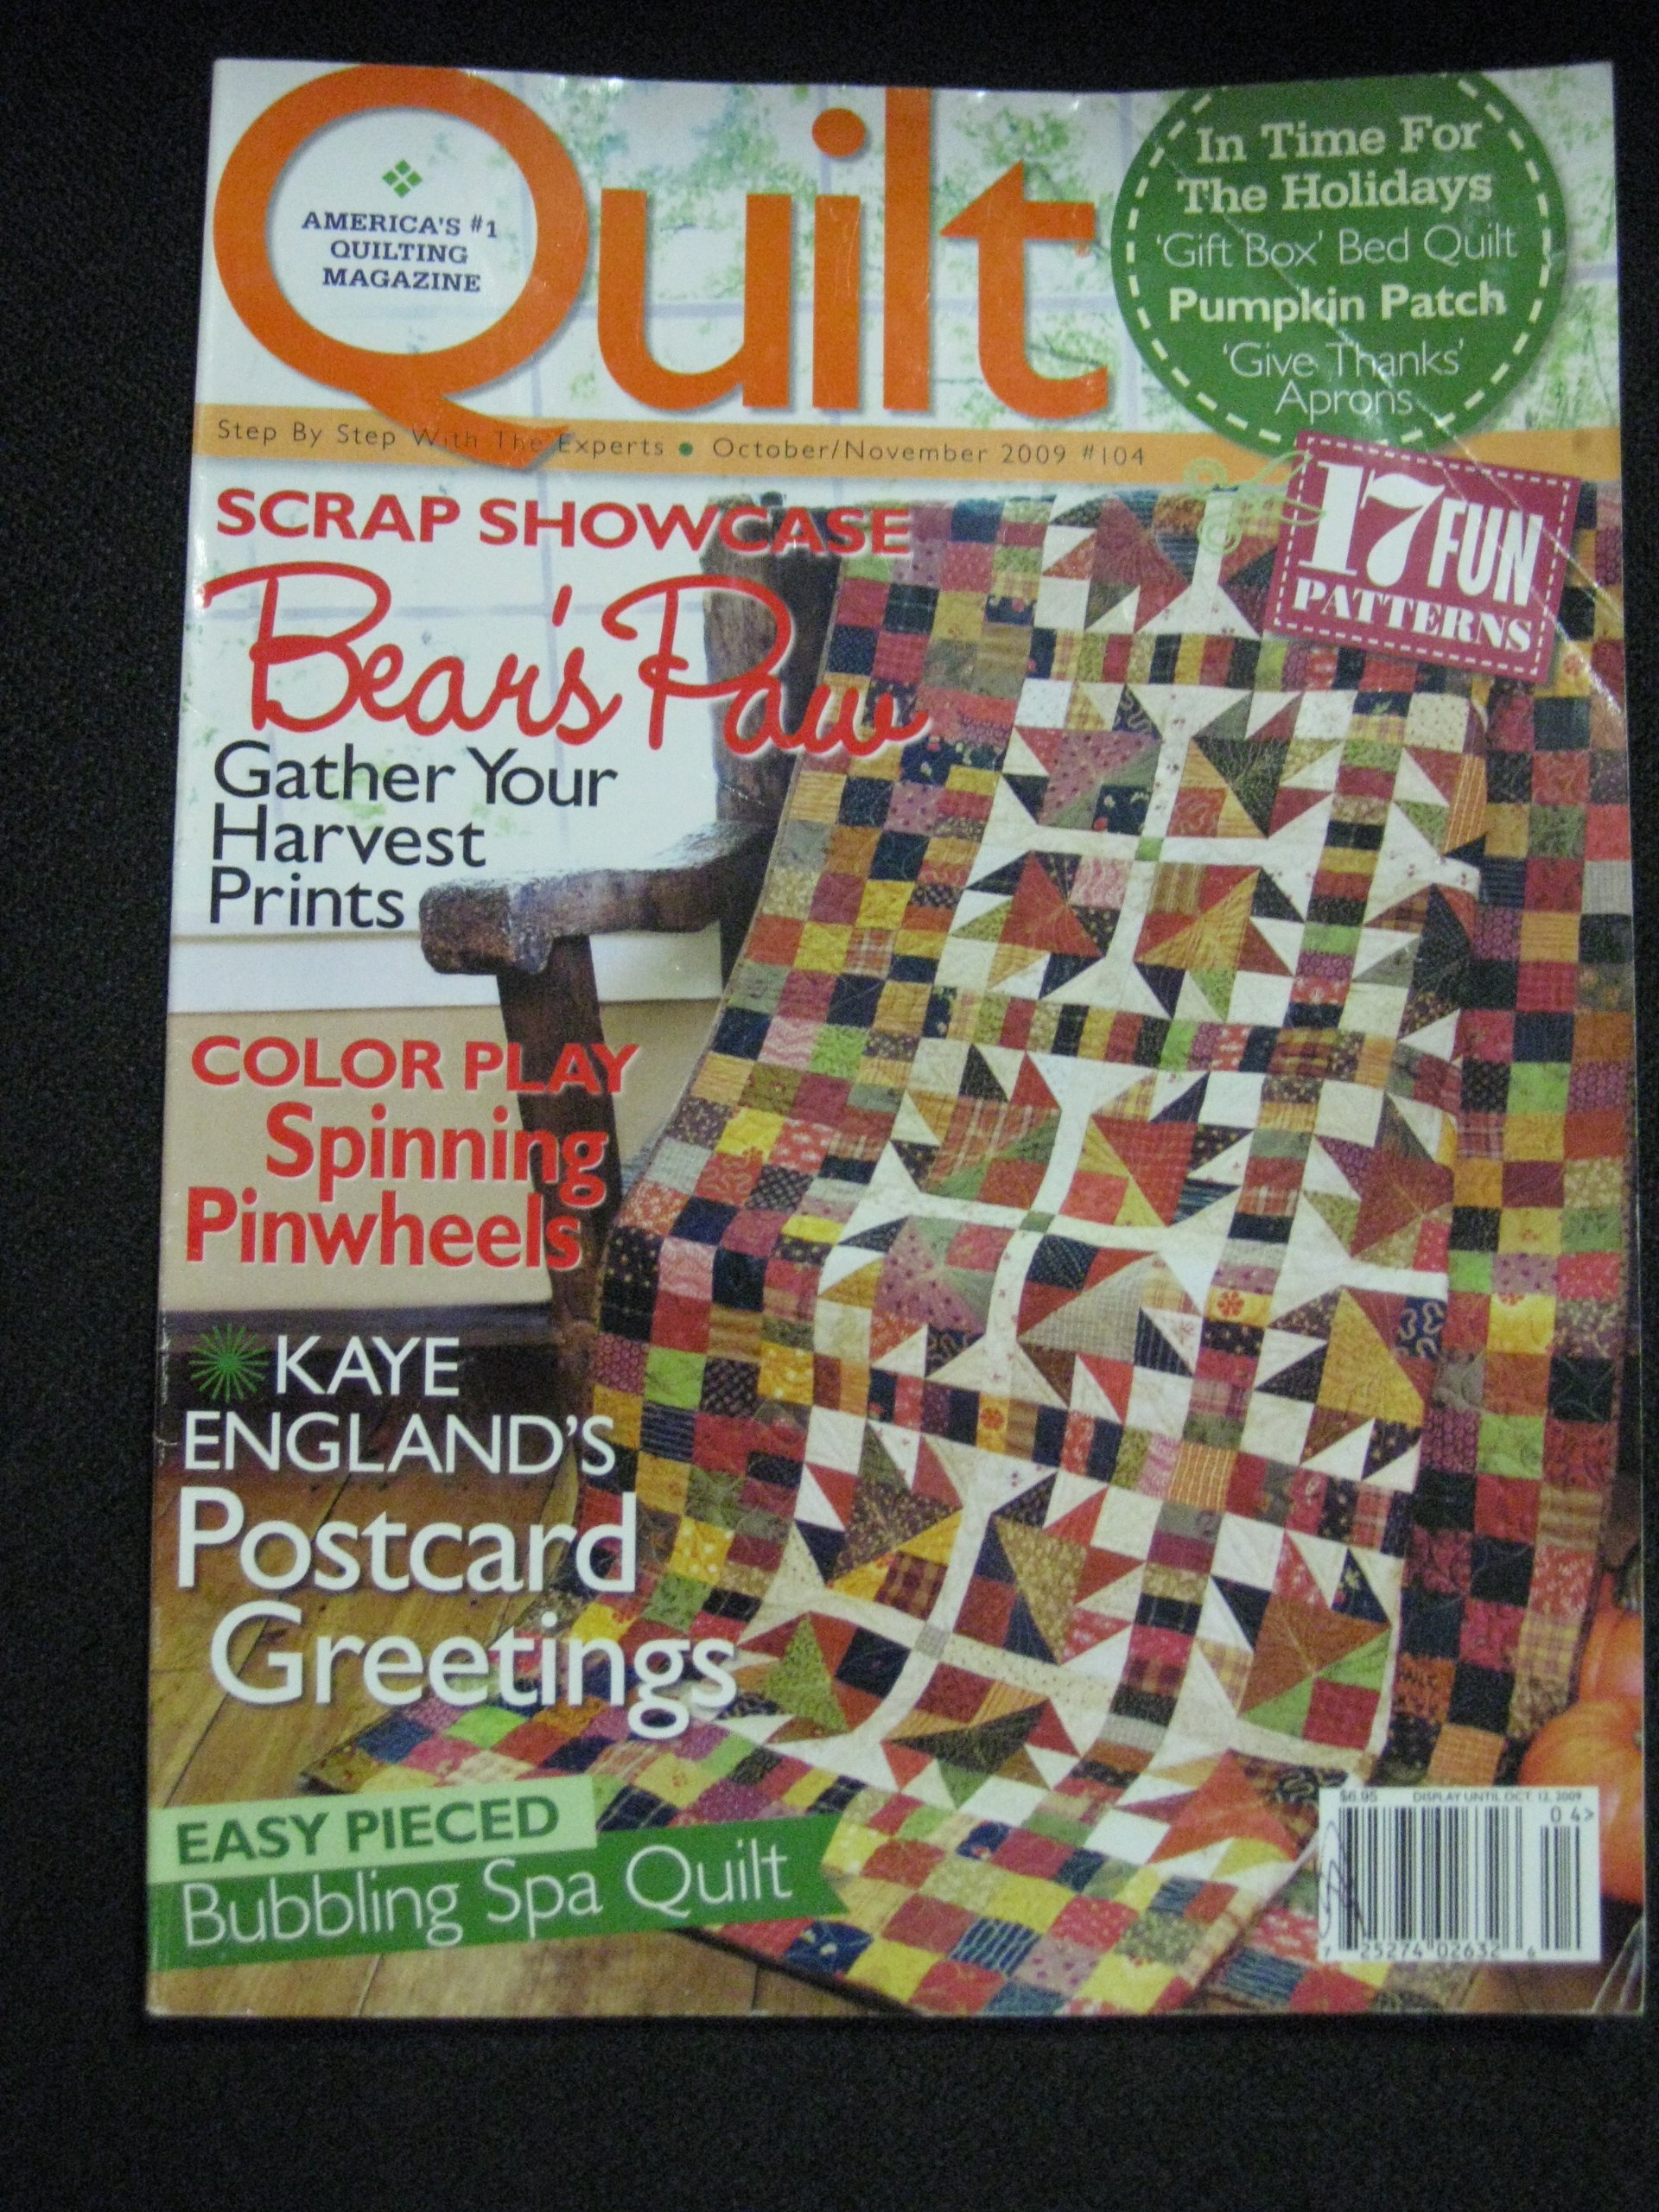 QUILT Magazine October/November 2009 No. 104 (America's #1 Quilting Magazine, Step by step with the experts, Scrap showcase Bear's Paw, Spinning Pinwheels, Kaye England, Bubbling Spa Quilt)